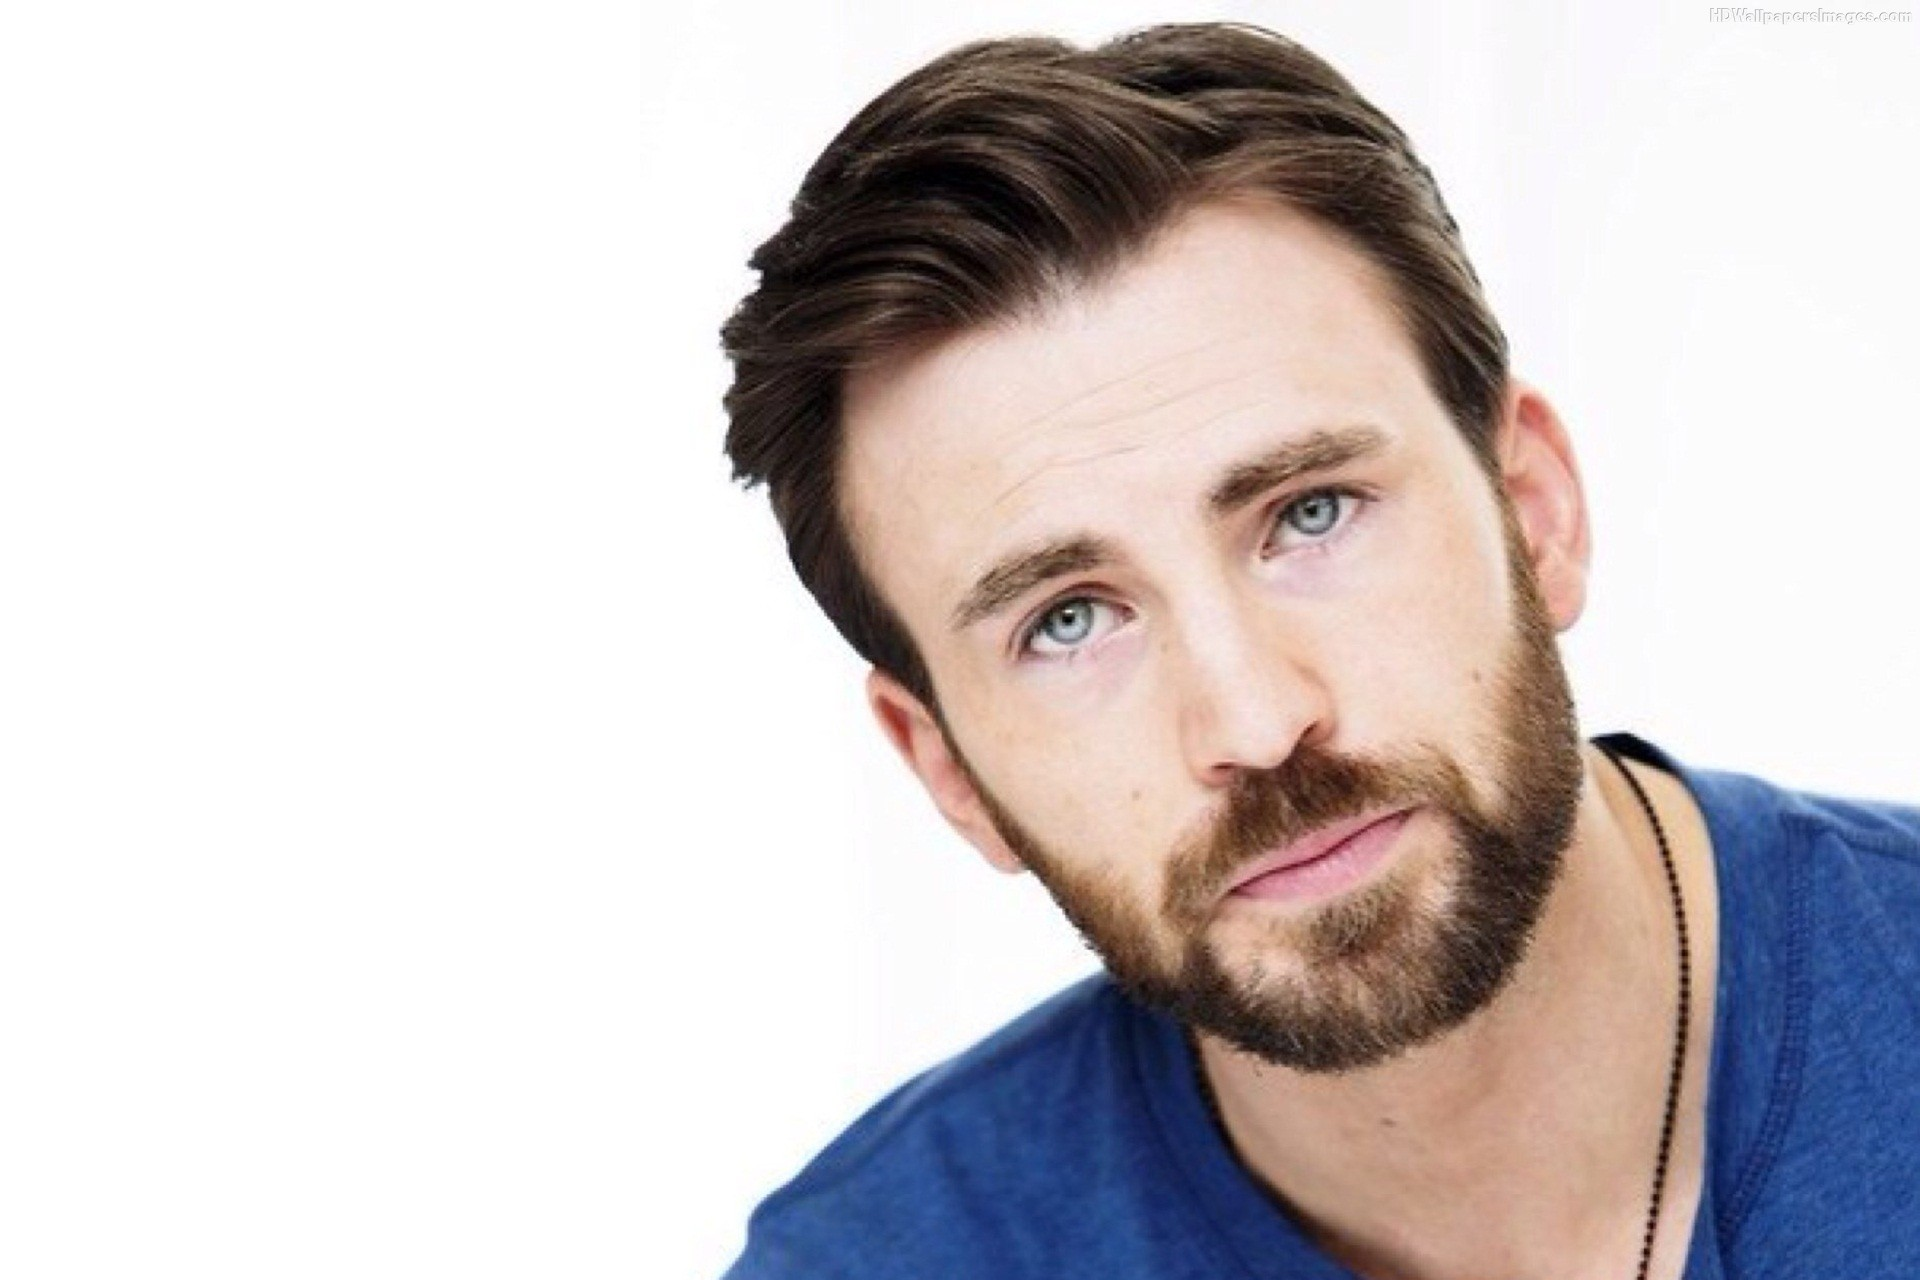 Inspirational Quotes Wallpaper Download Chris Evans Wallpapers Hd Pixelstalk Net